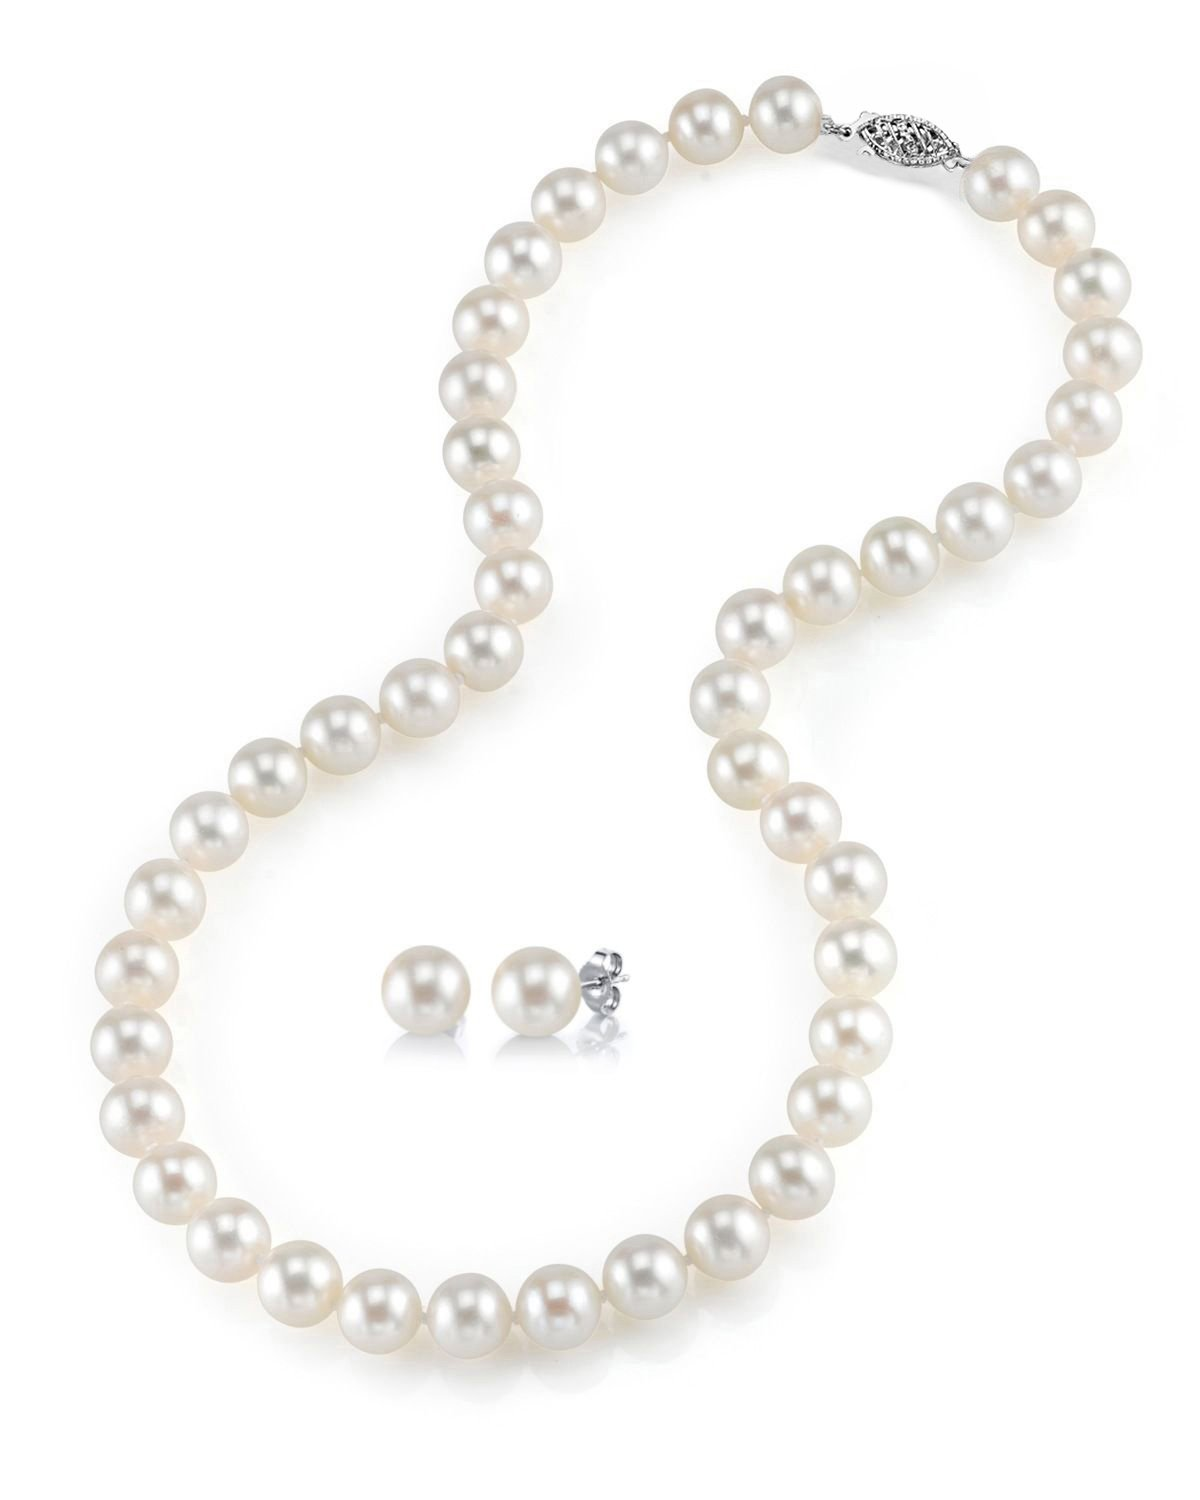 THE PEARL SOURCE 14K Gold 7-8mm Round White Freshwater Cultured Pearl Necklace & Earrings Set in 24'' Matinee Length for Women